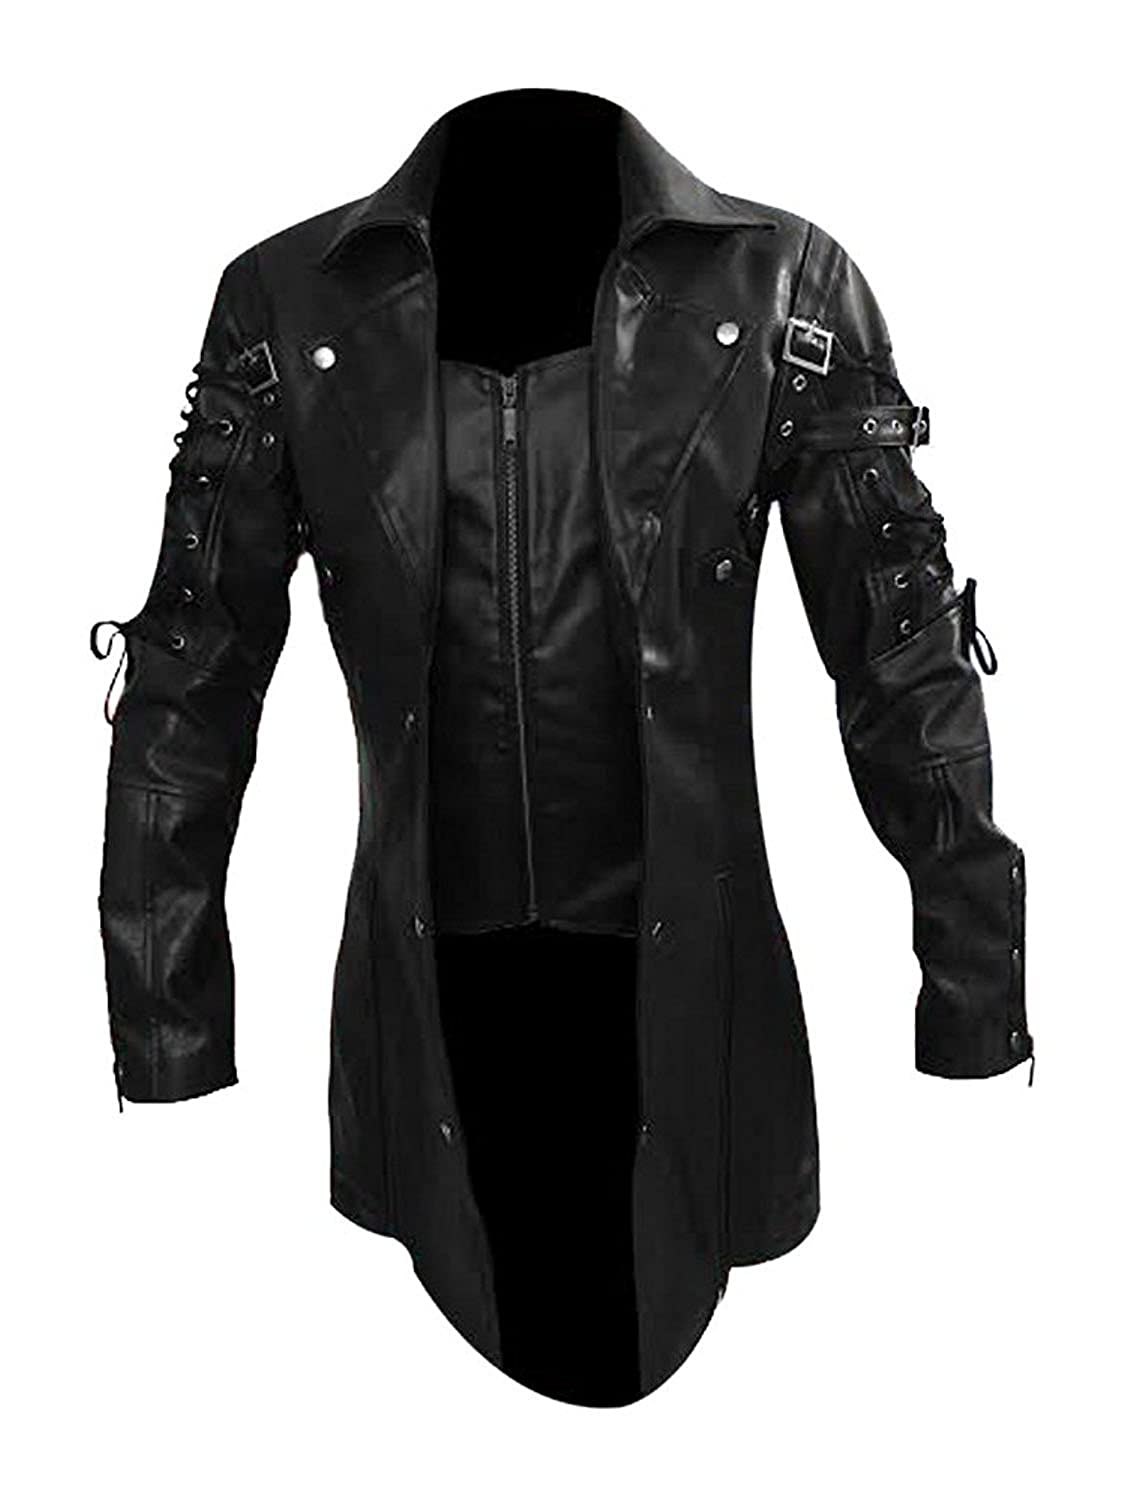 Men's Steampunk Clothing, Costumes, Fashion Mens Real Black Leather Goth Matrix Trench Coat Steampunk Gothic Jacket $84.99 AT vintagedancer.com